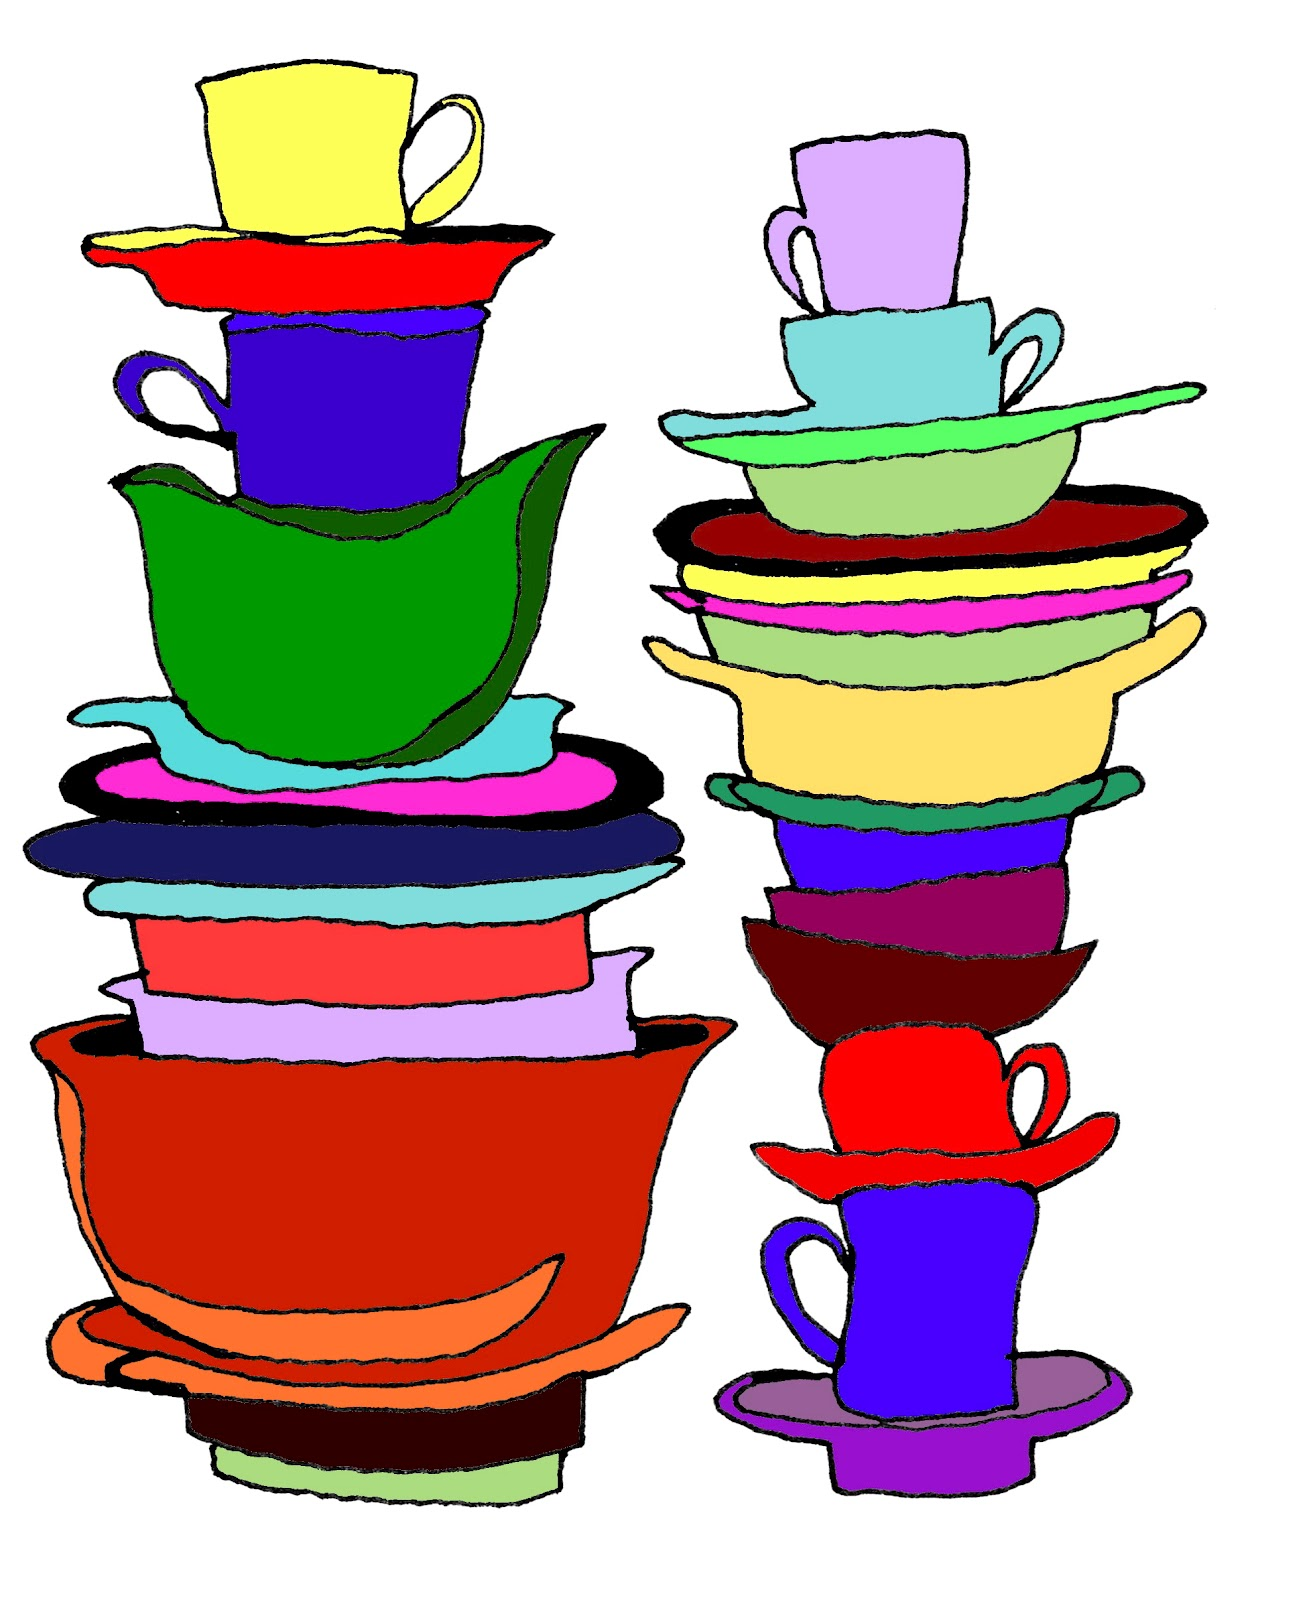 1820 Dishes free clipart.